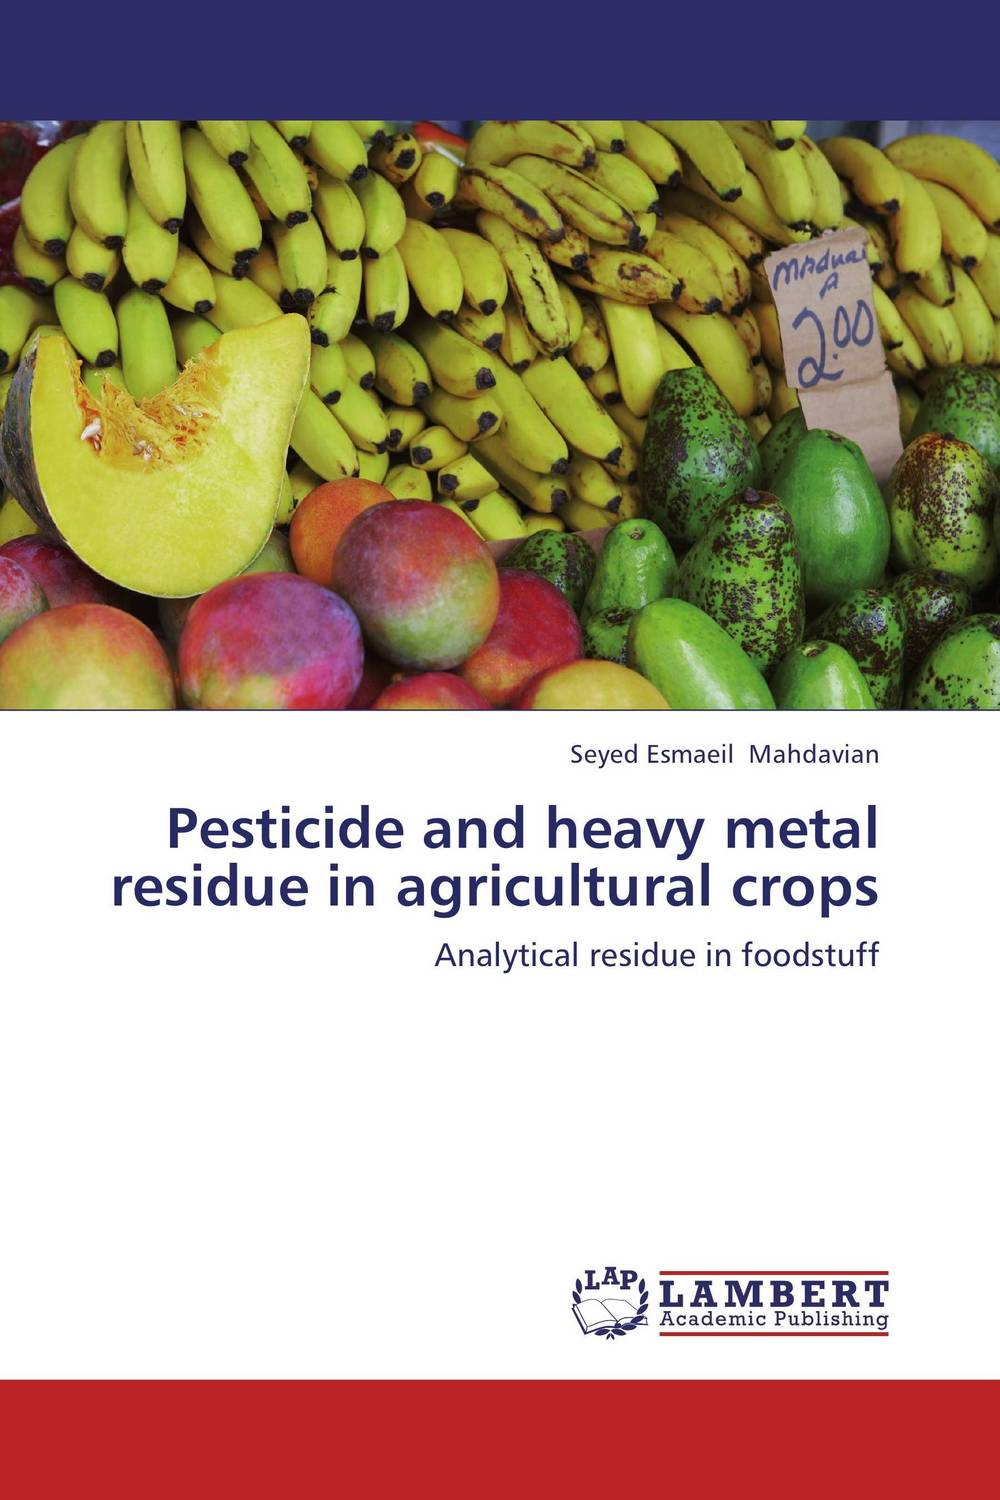 Pesticide and heavy metal residue in agricultural crops